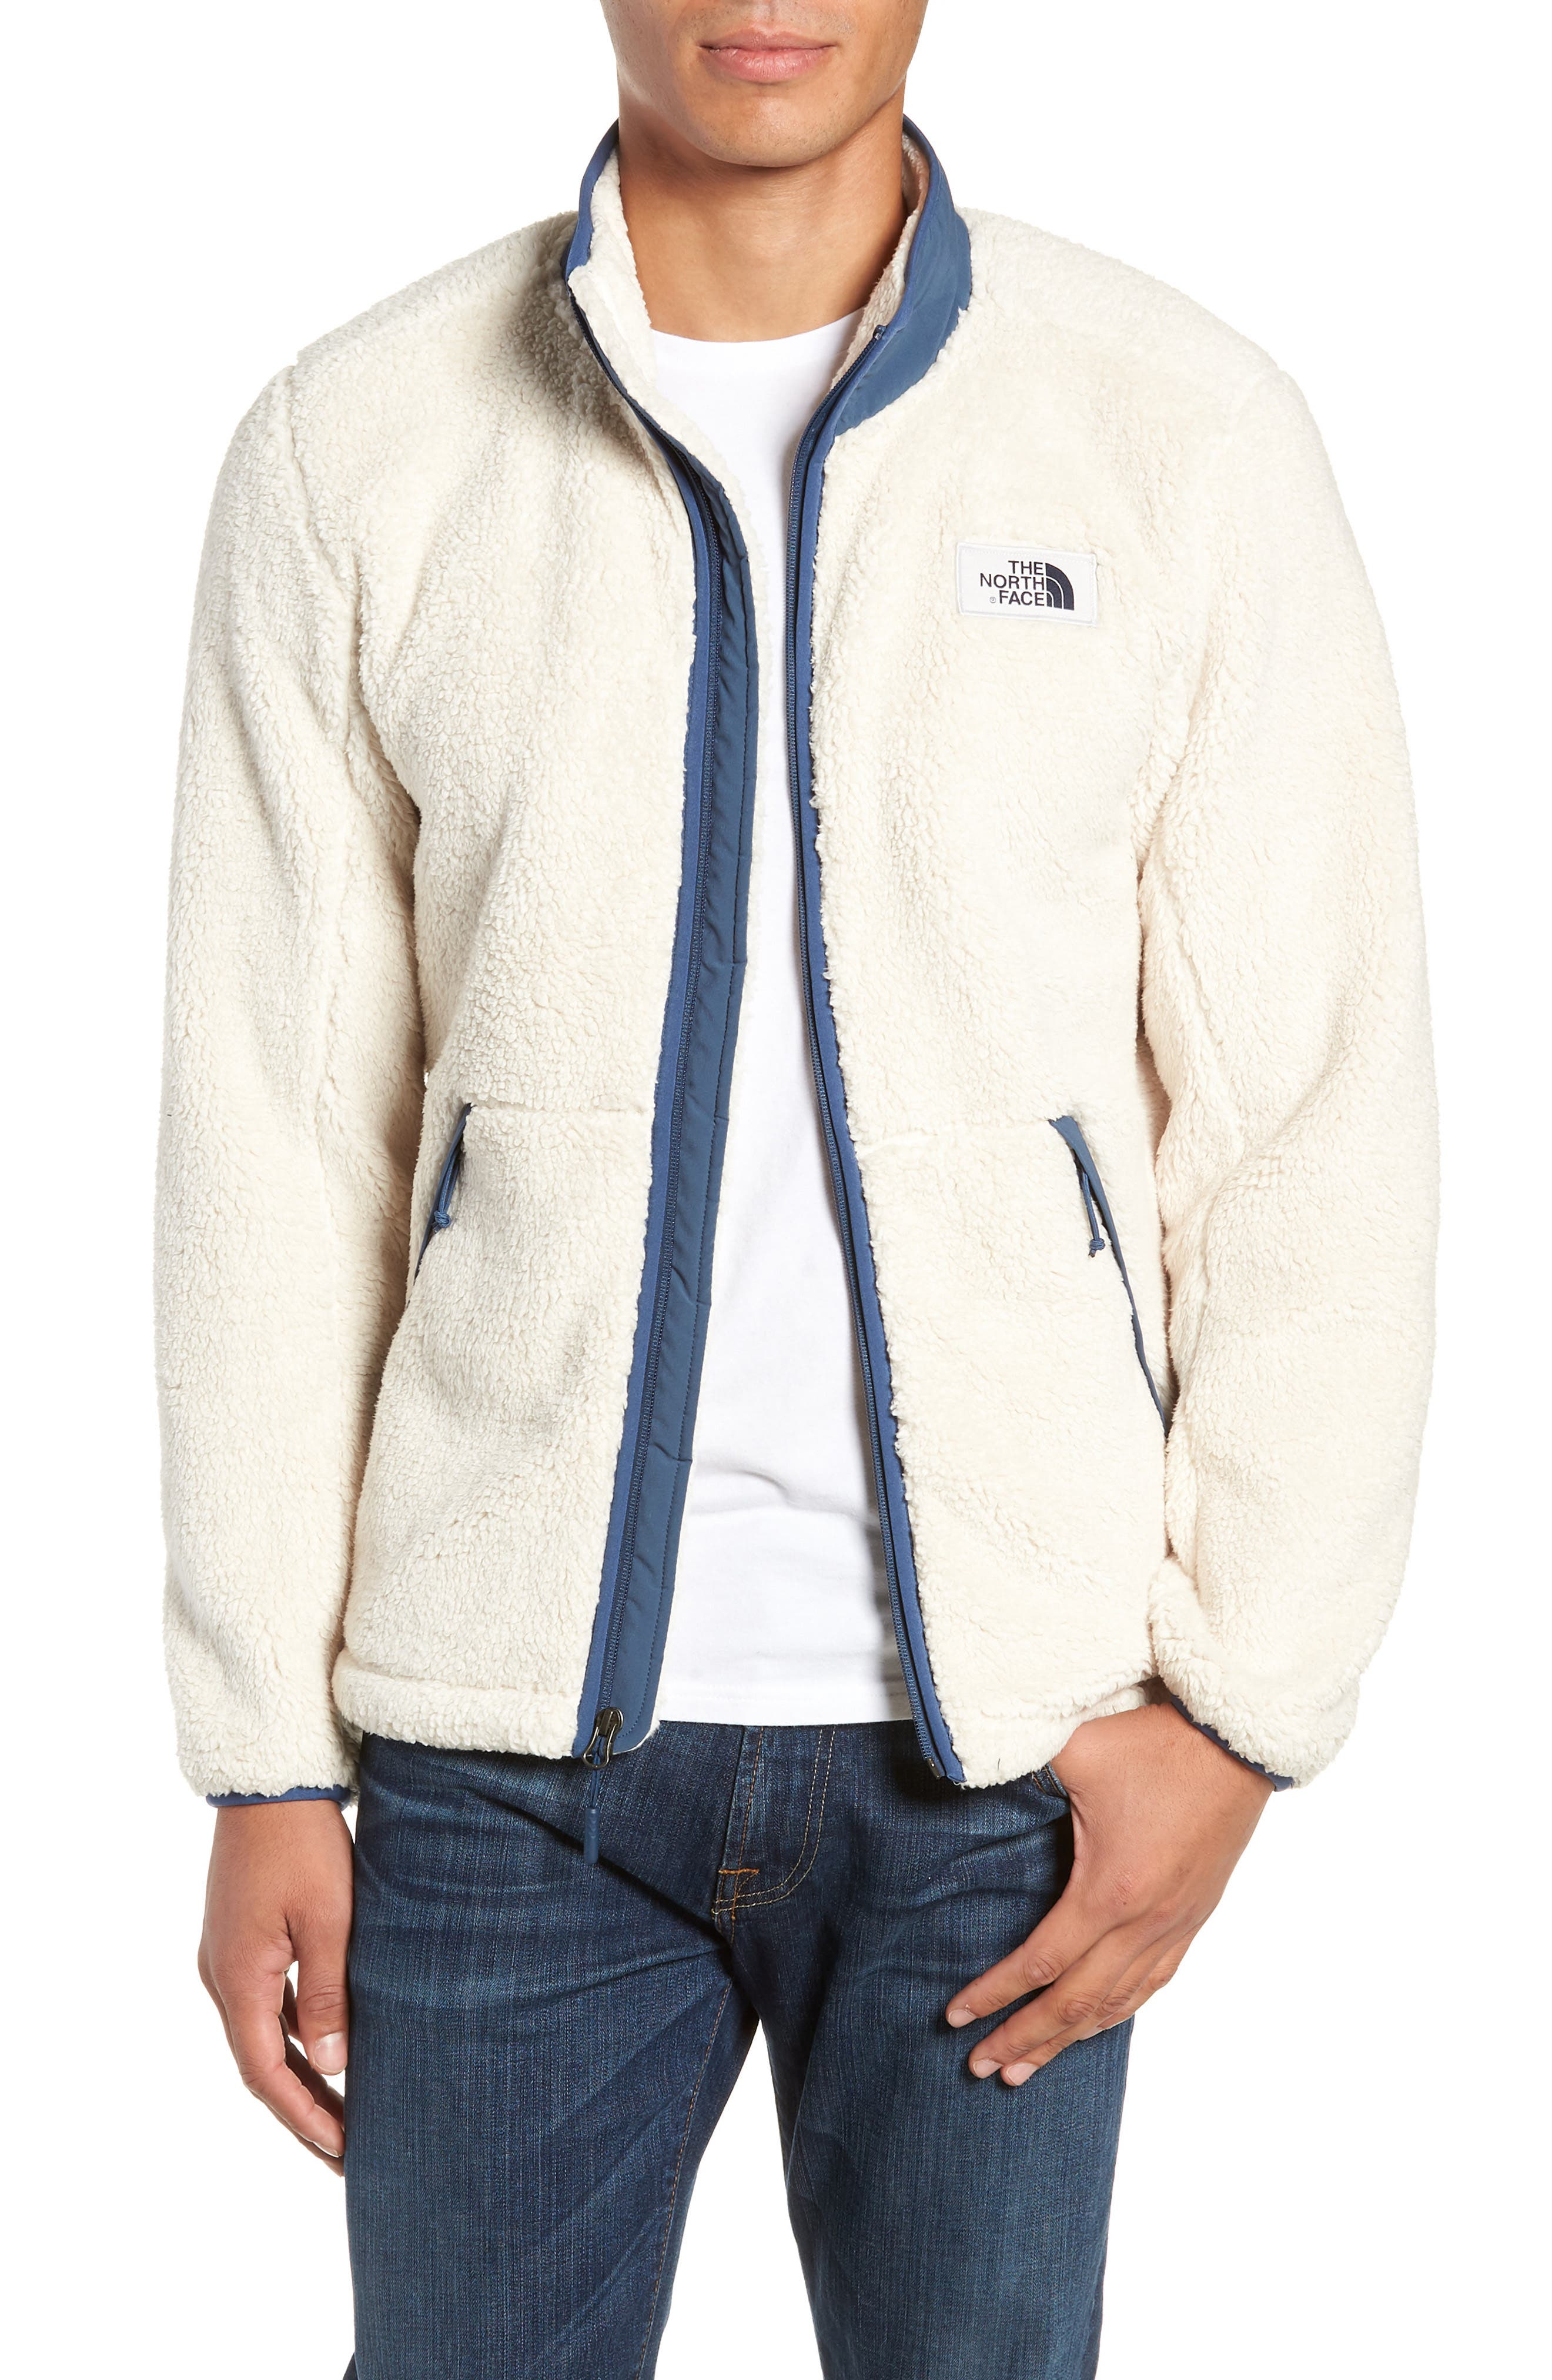 Campshire Zip Fleece Jacket,                             Main thumbnail 1, color,                             VINTAGE WHITE/ SHADY BLUE